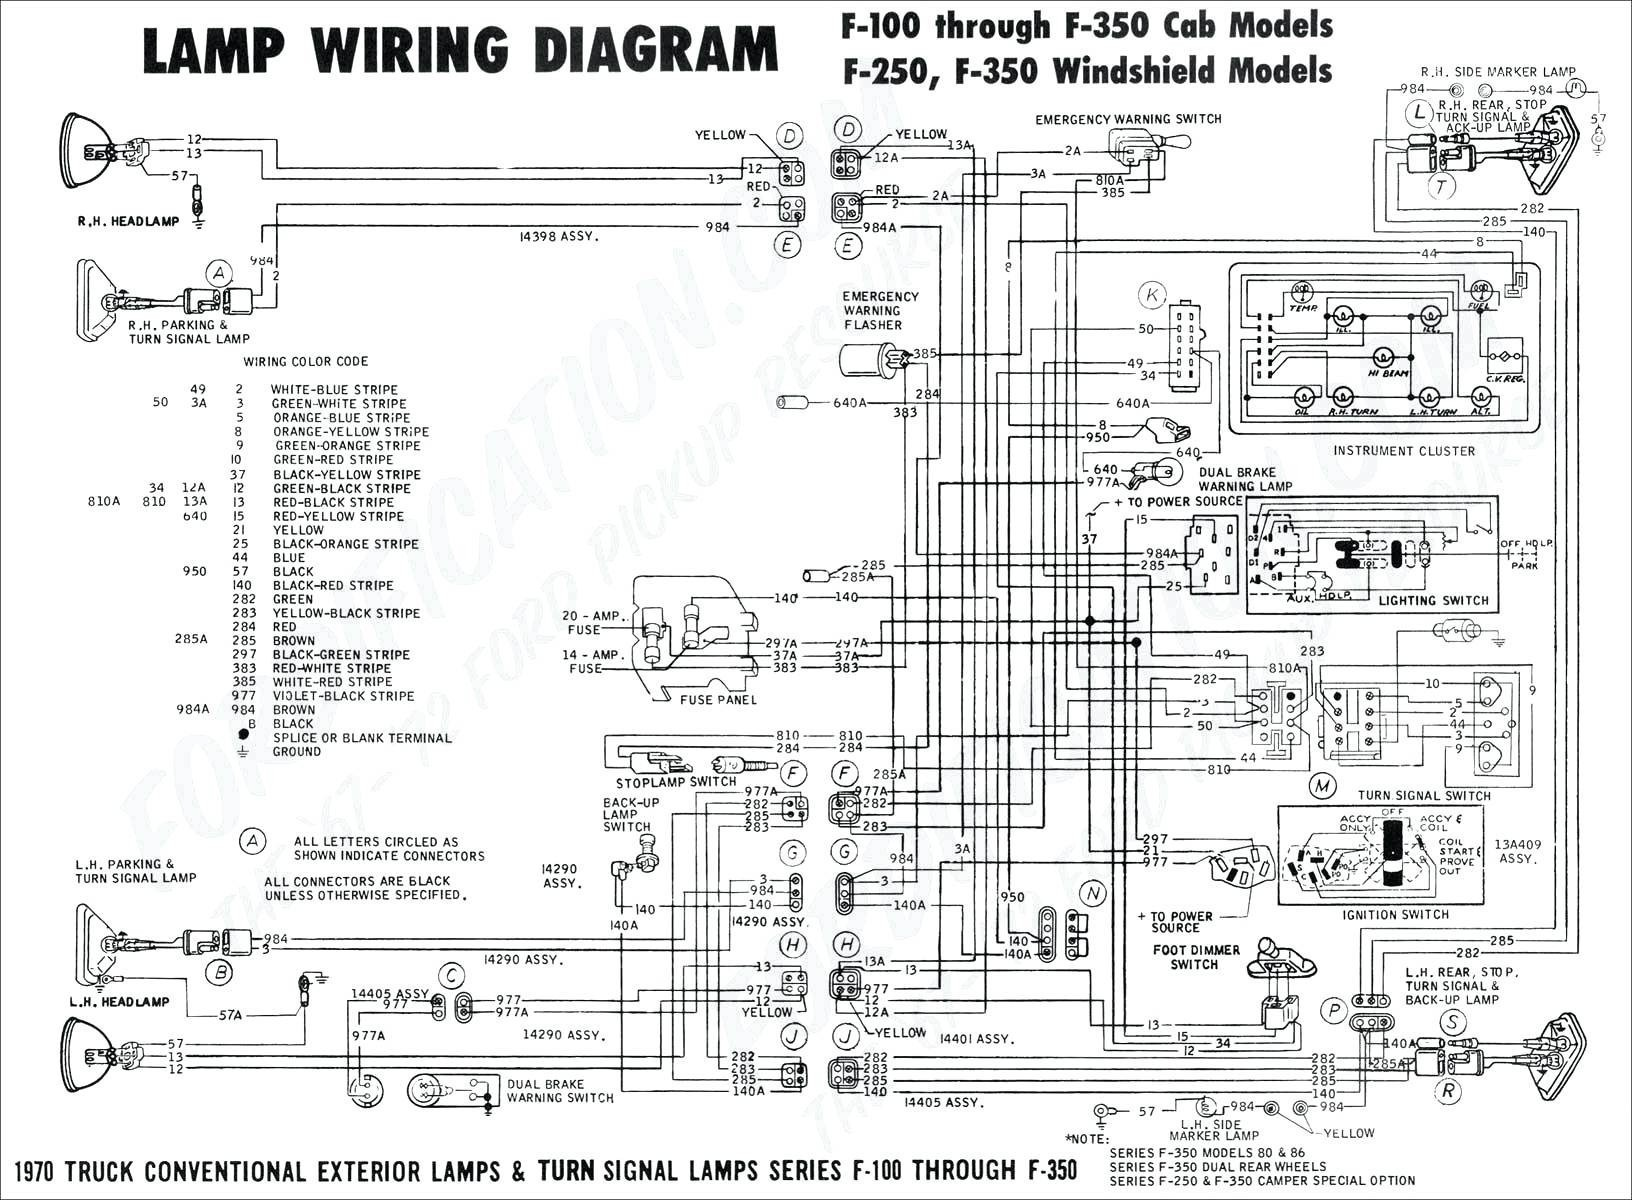 Simple Diesel Engine Diagram 97 ford F 350 7 3 Diesel Engine Diagram Of Simple Diesel Engine Diagram Applied Sciences Free Full Text